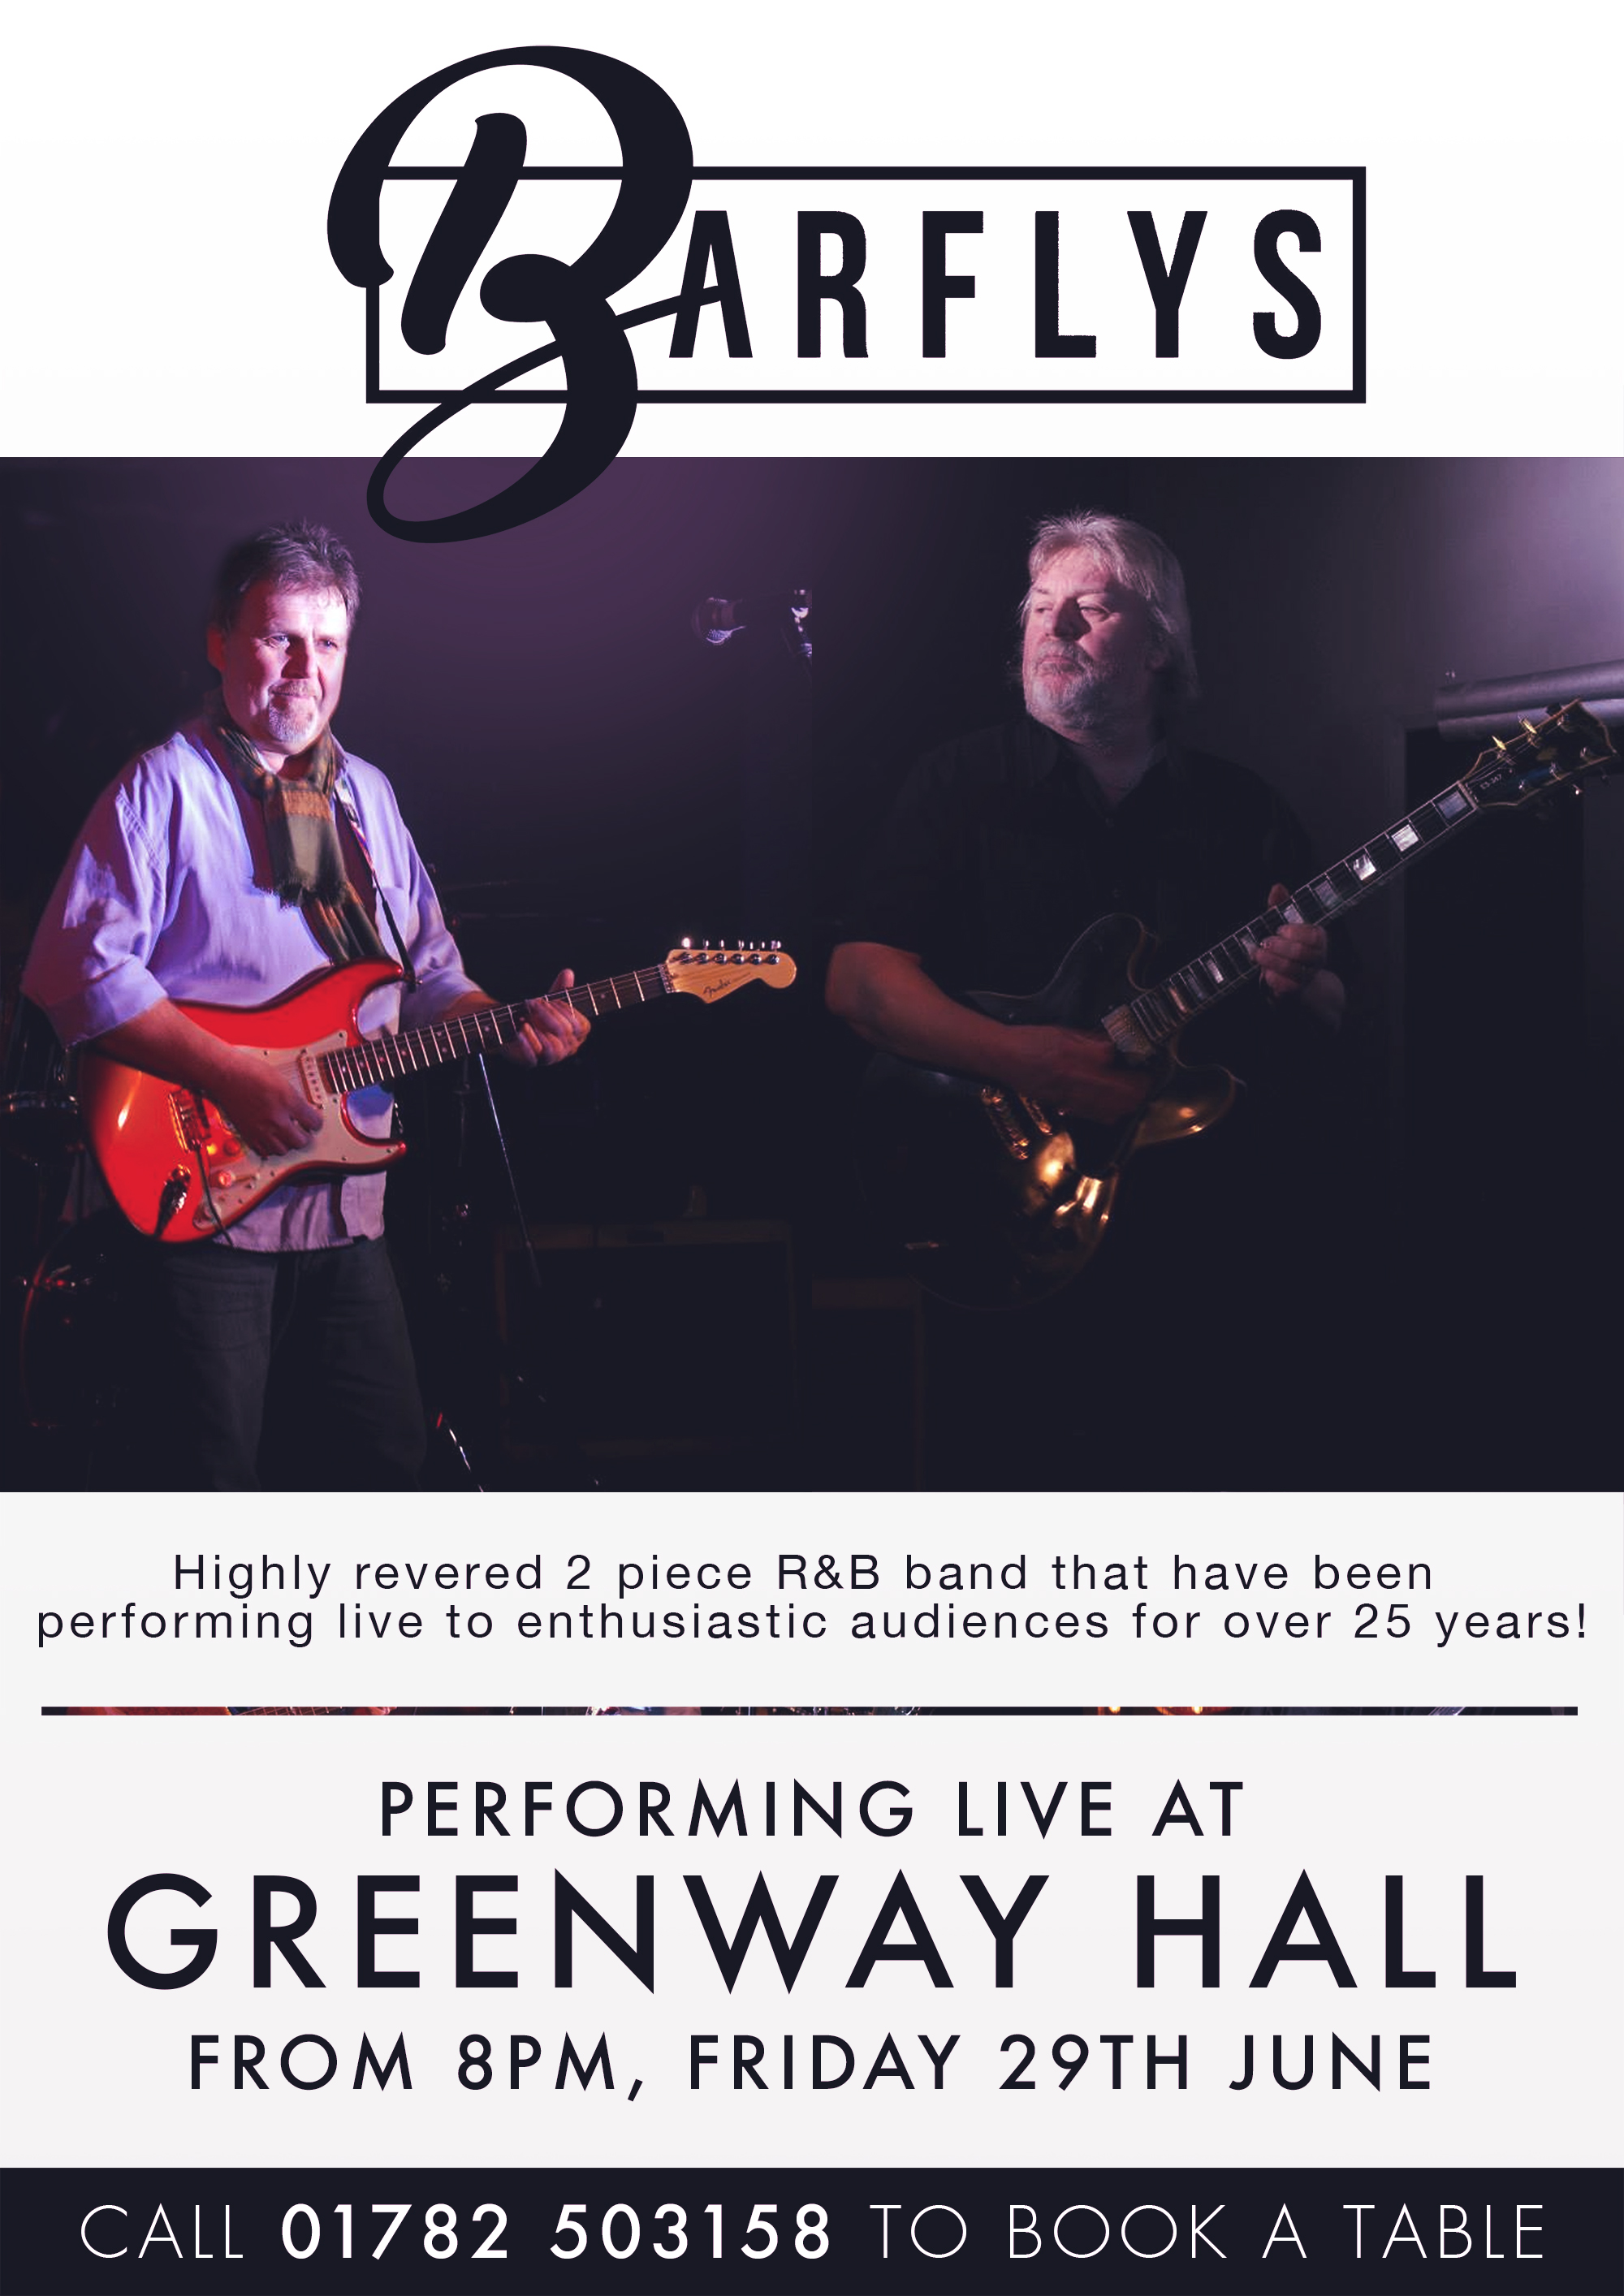 Book a table to come and see the Bar Flies perform live at Greenway Hall on the 29th June